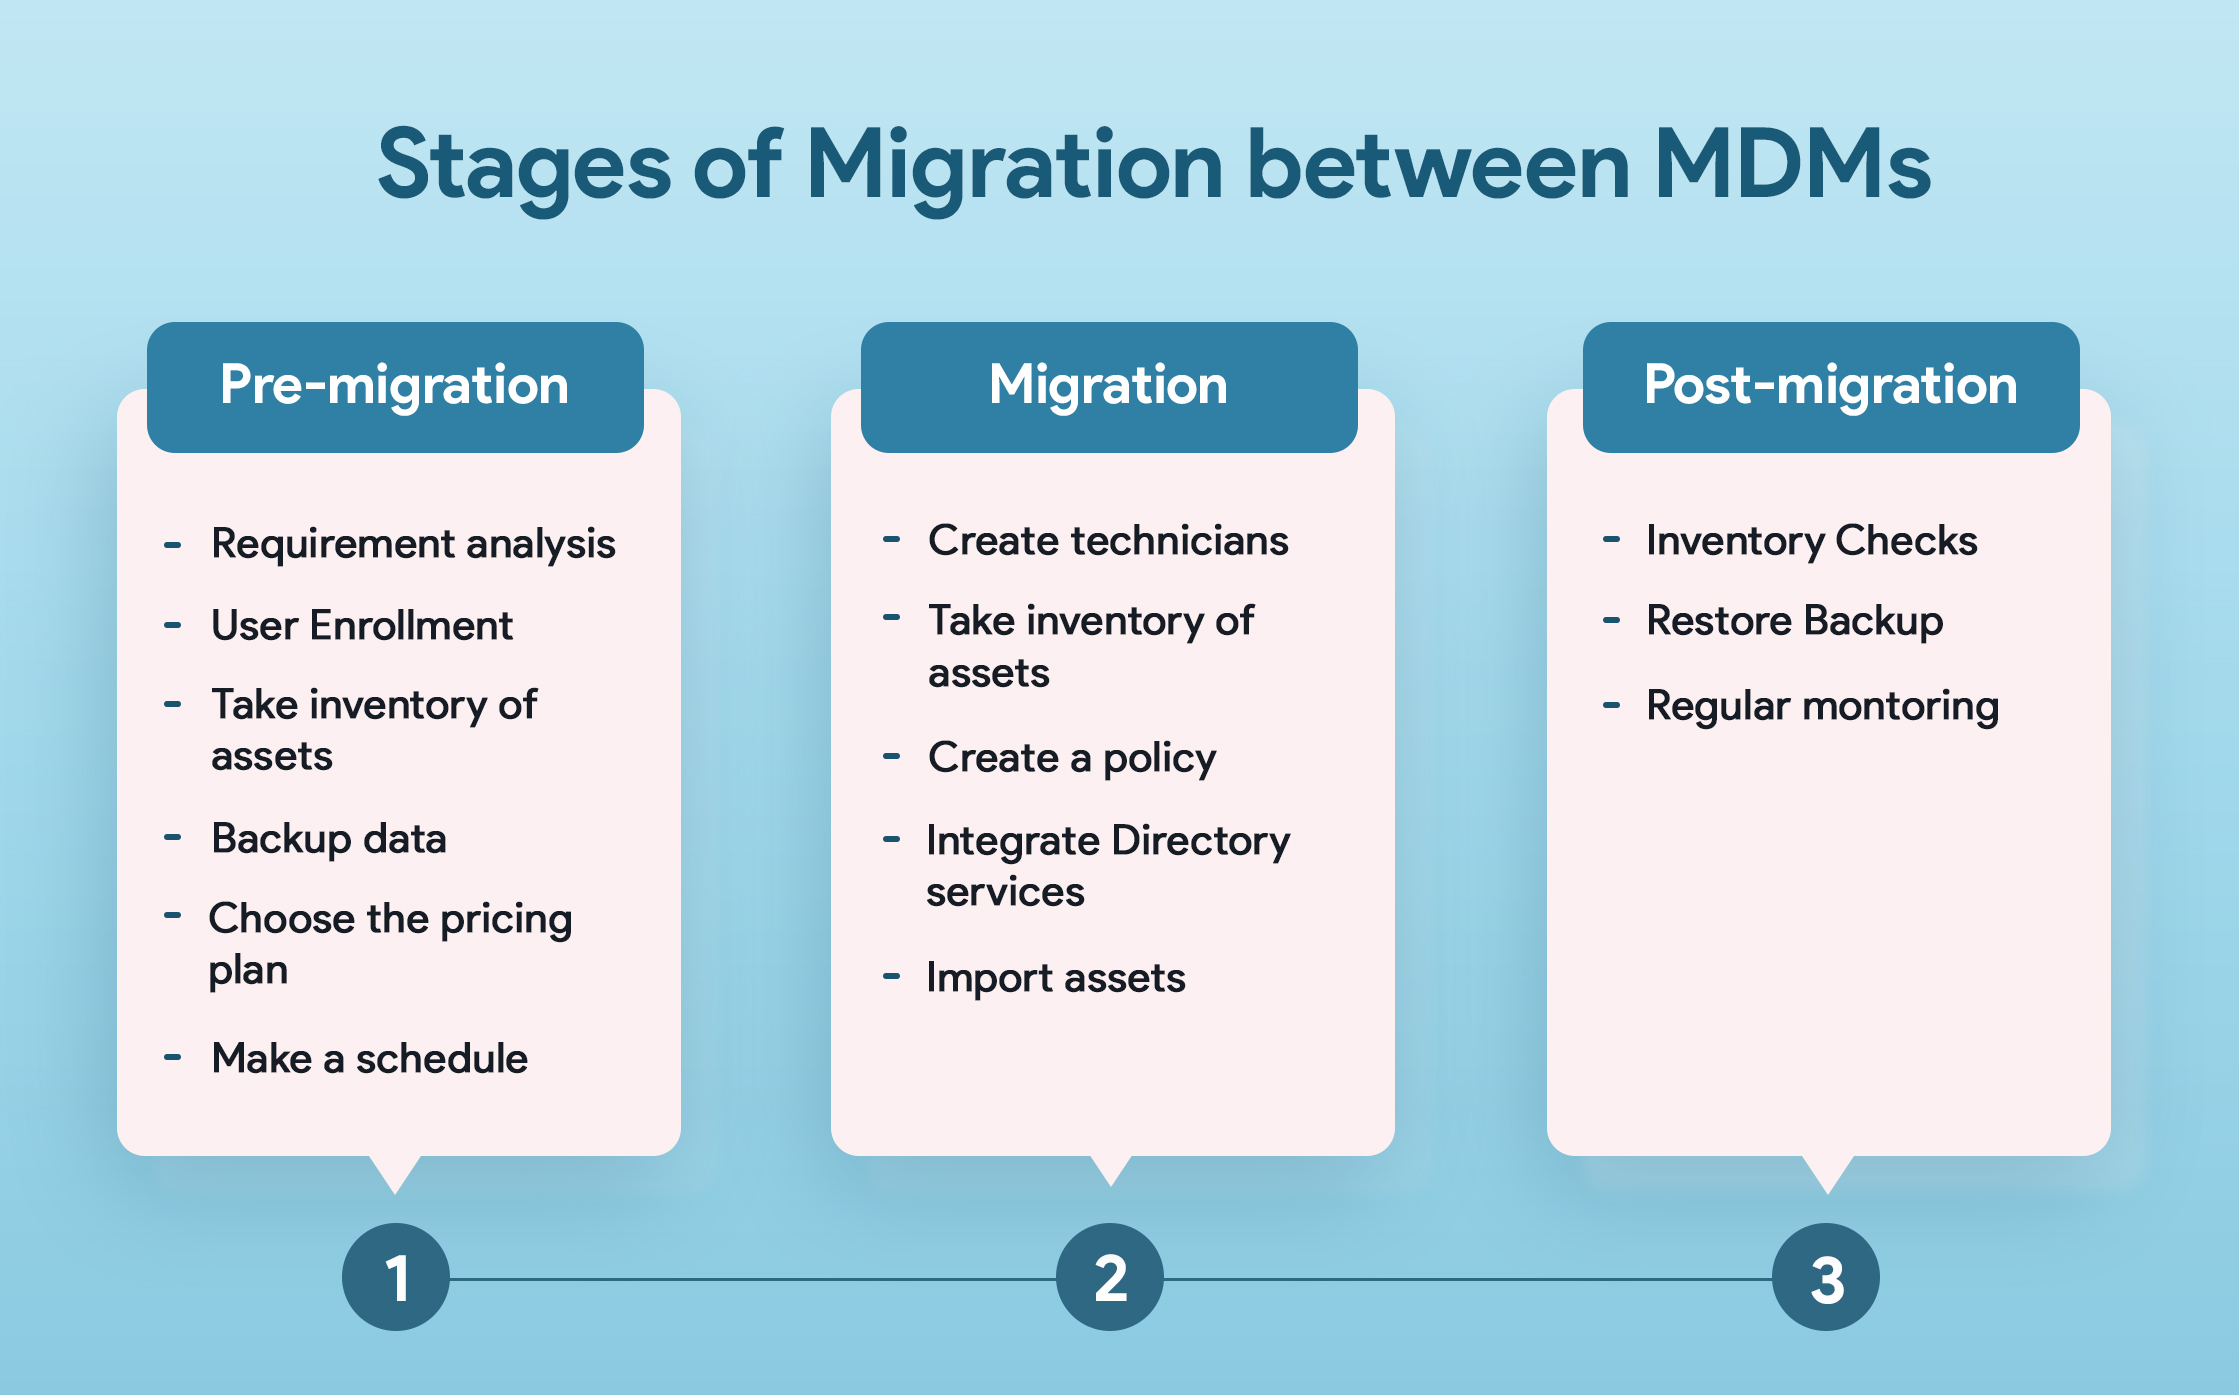 Stages of Migration